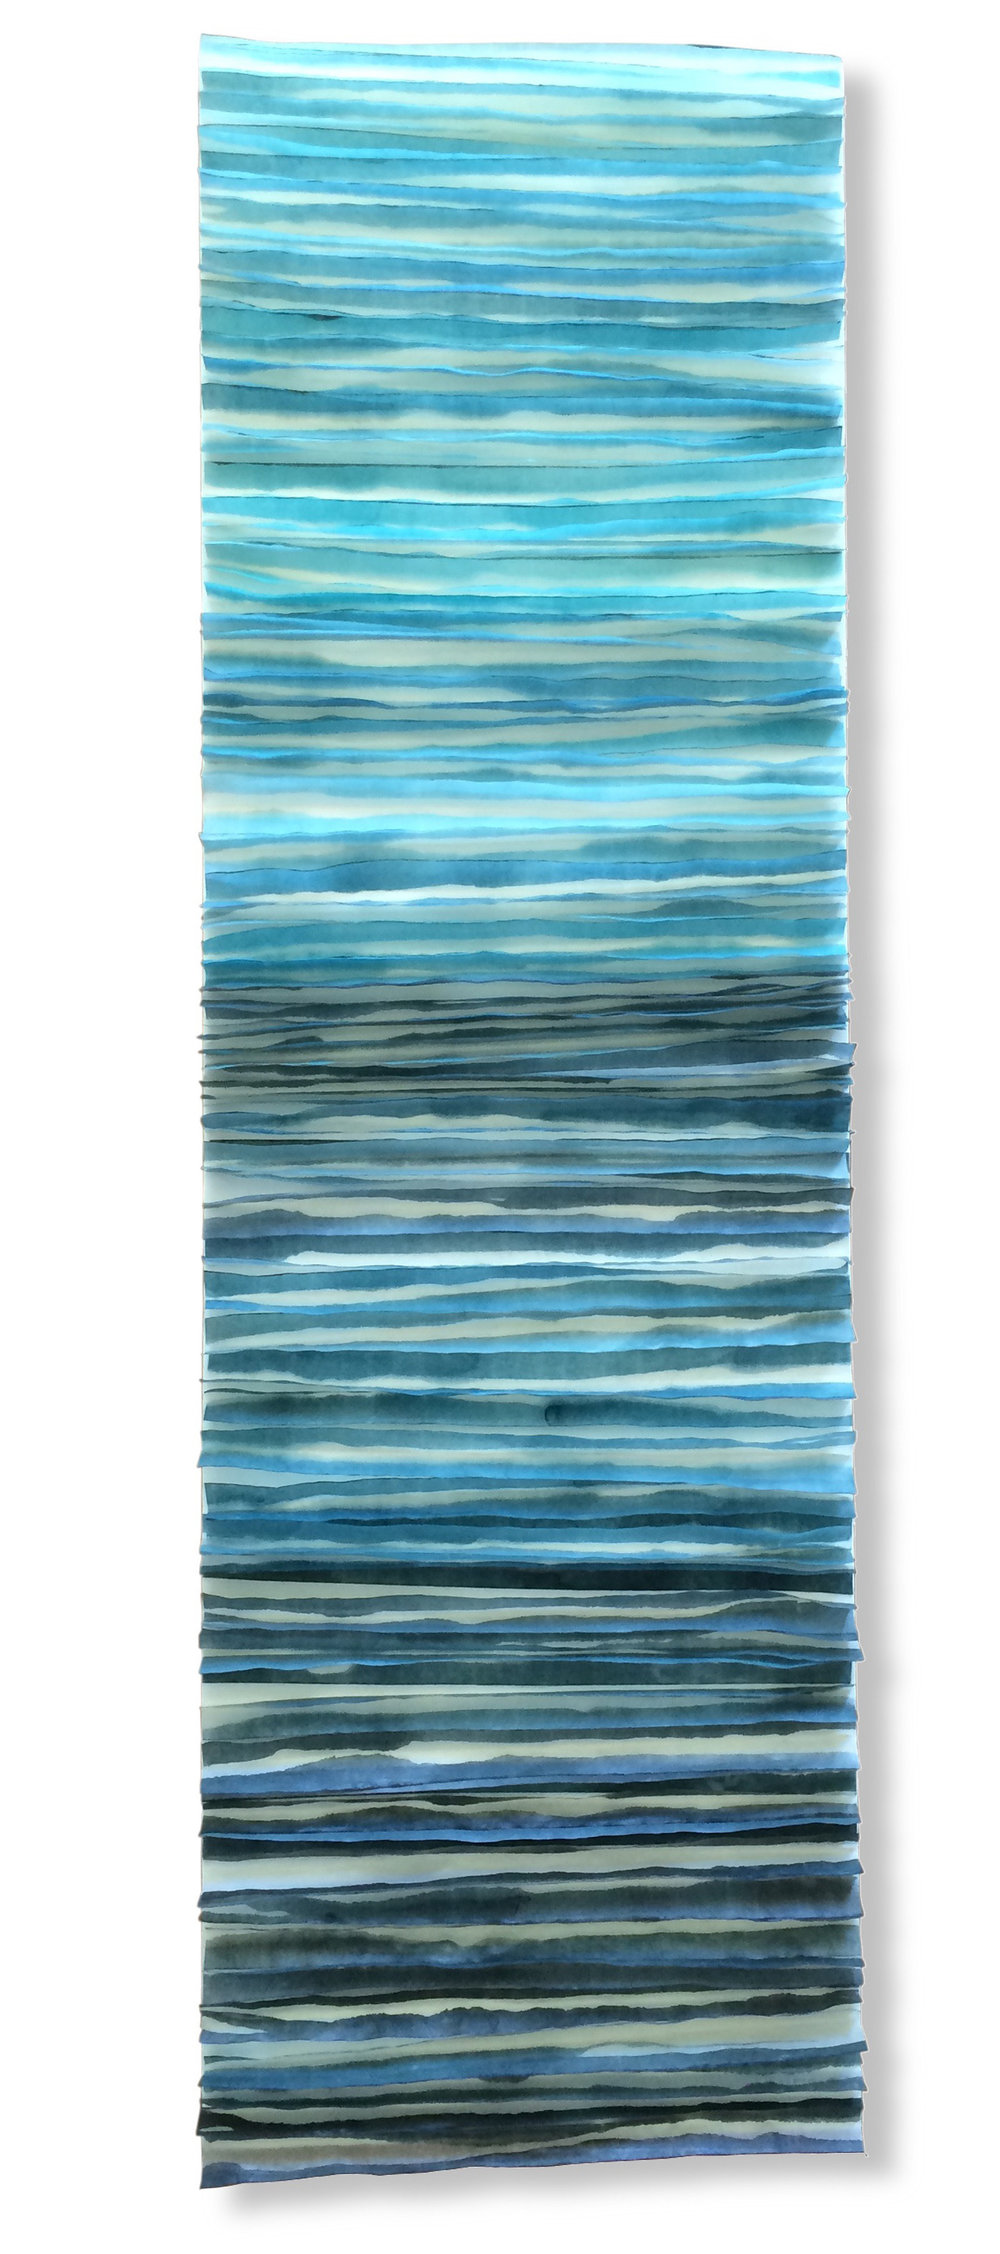 """Wallow, 2016 Encaustic, Japanese Mulberry Paper, Watercolor 15"""" x 48"""" x 1.5"""" Commission"""